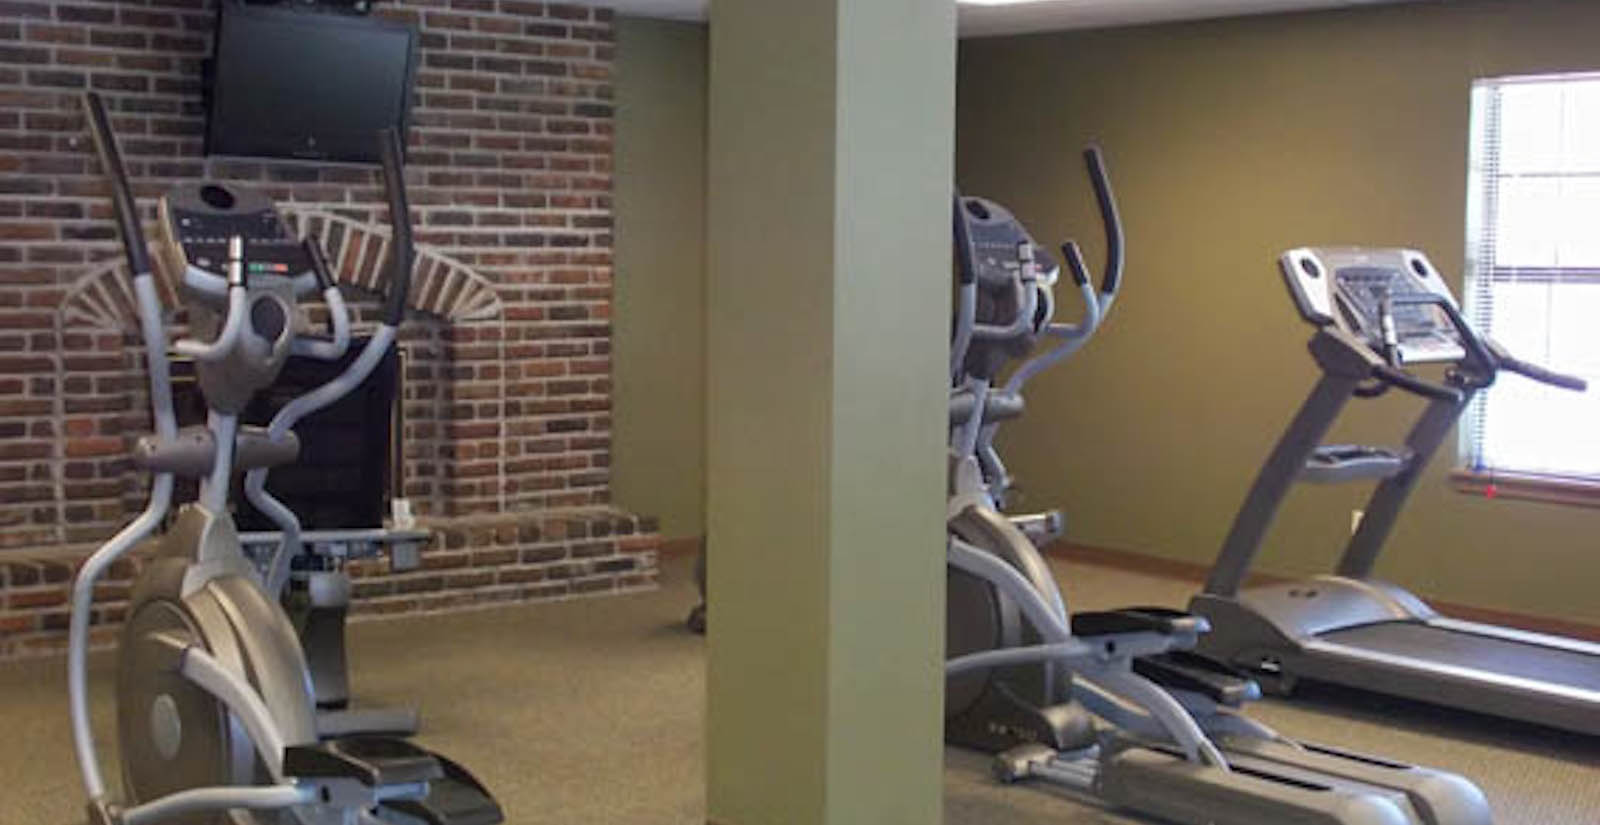 Fitness center at Kansas City apartments